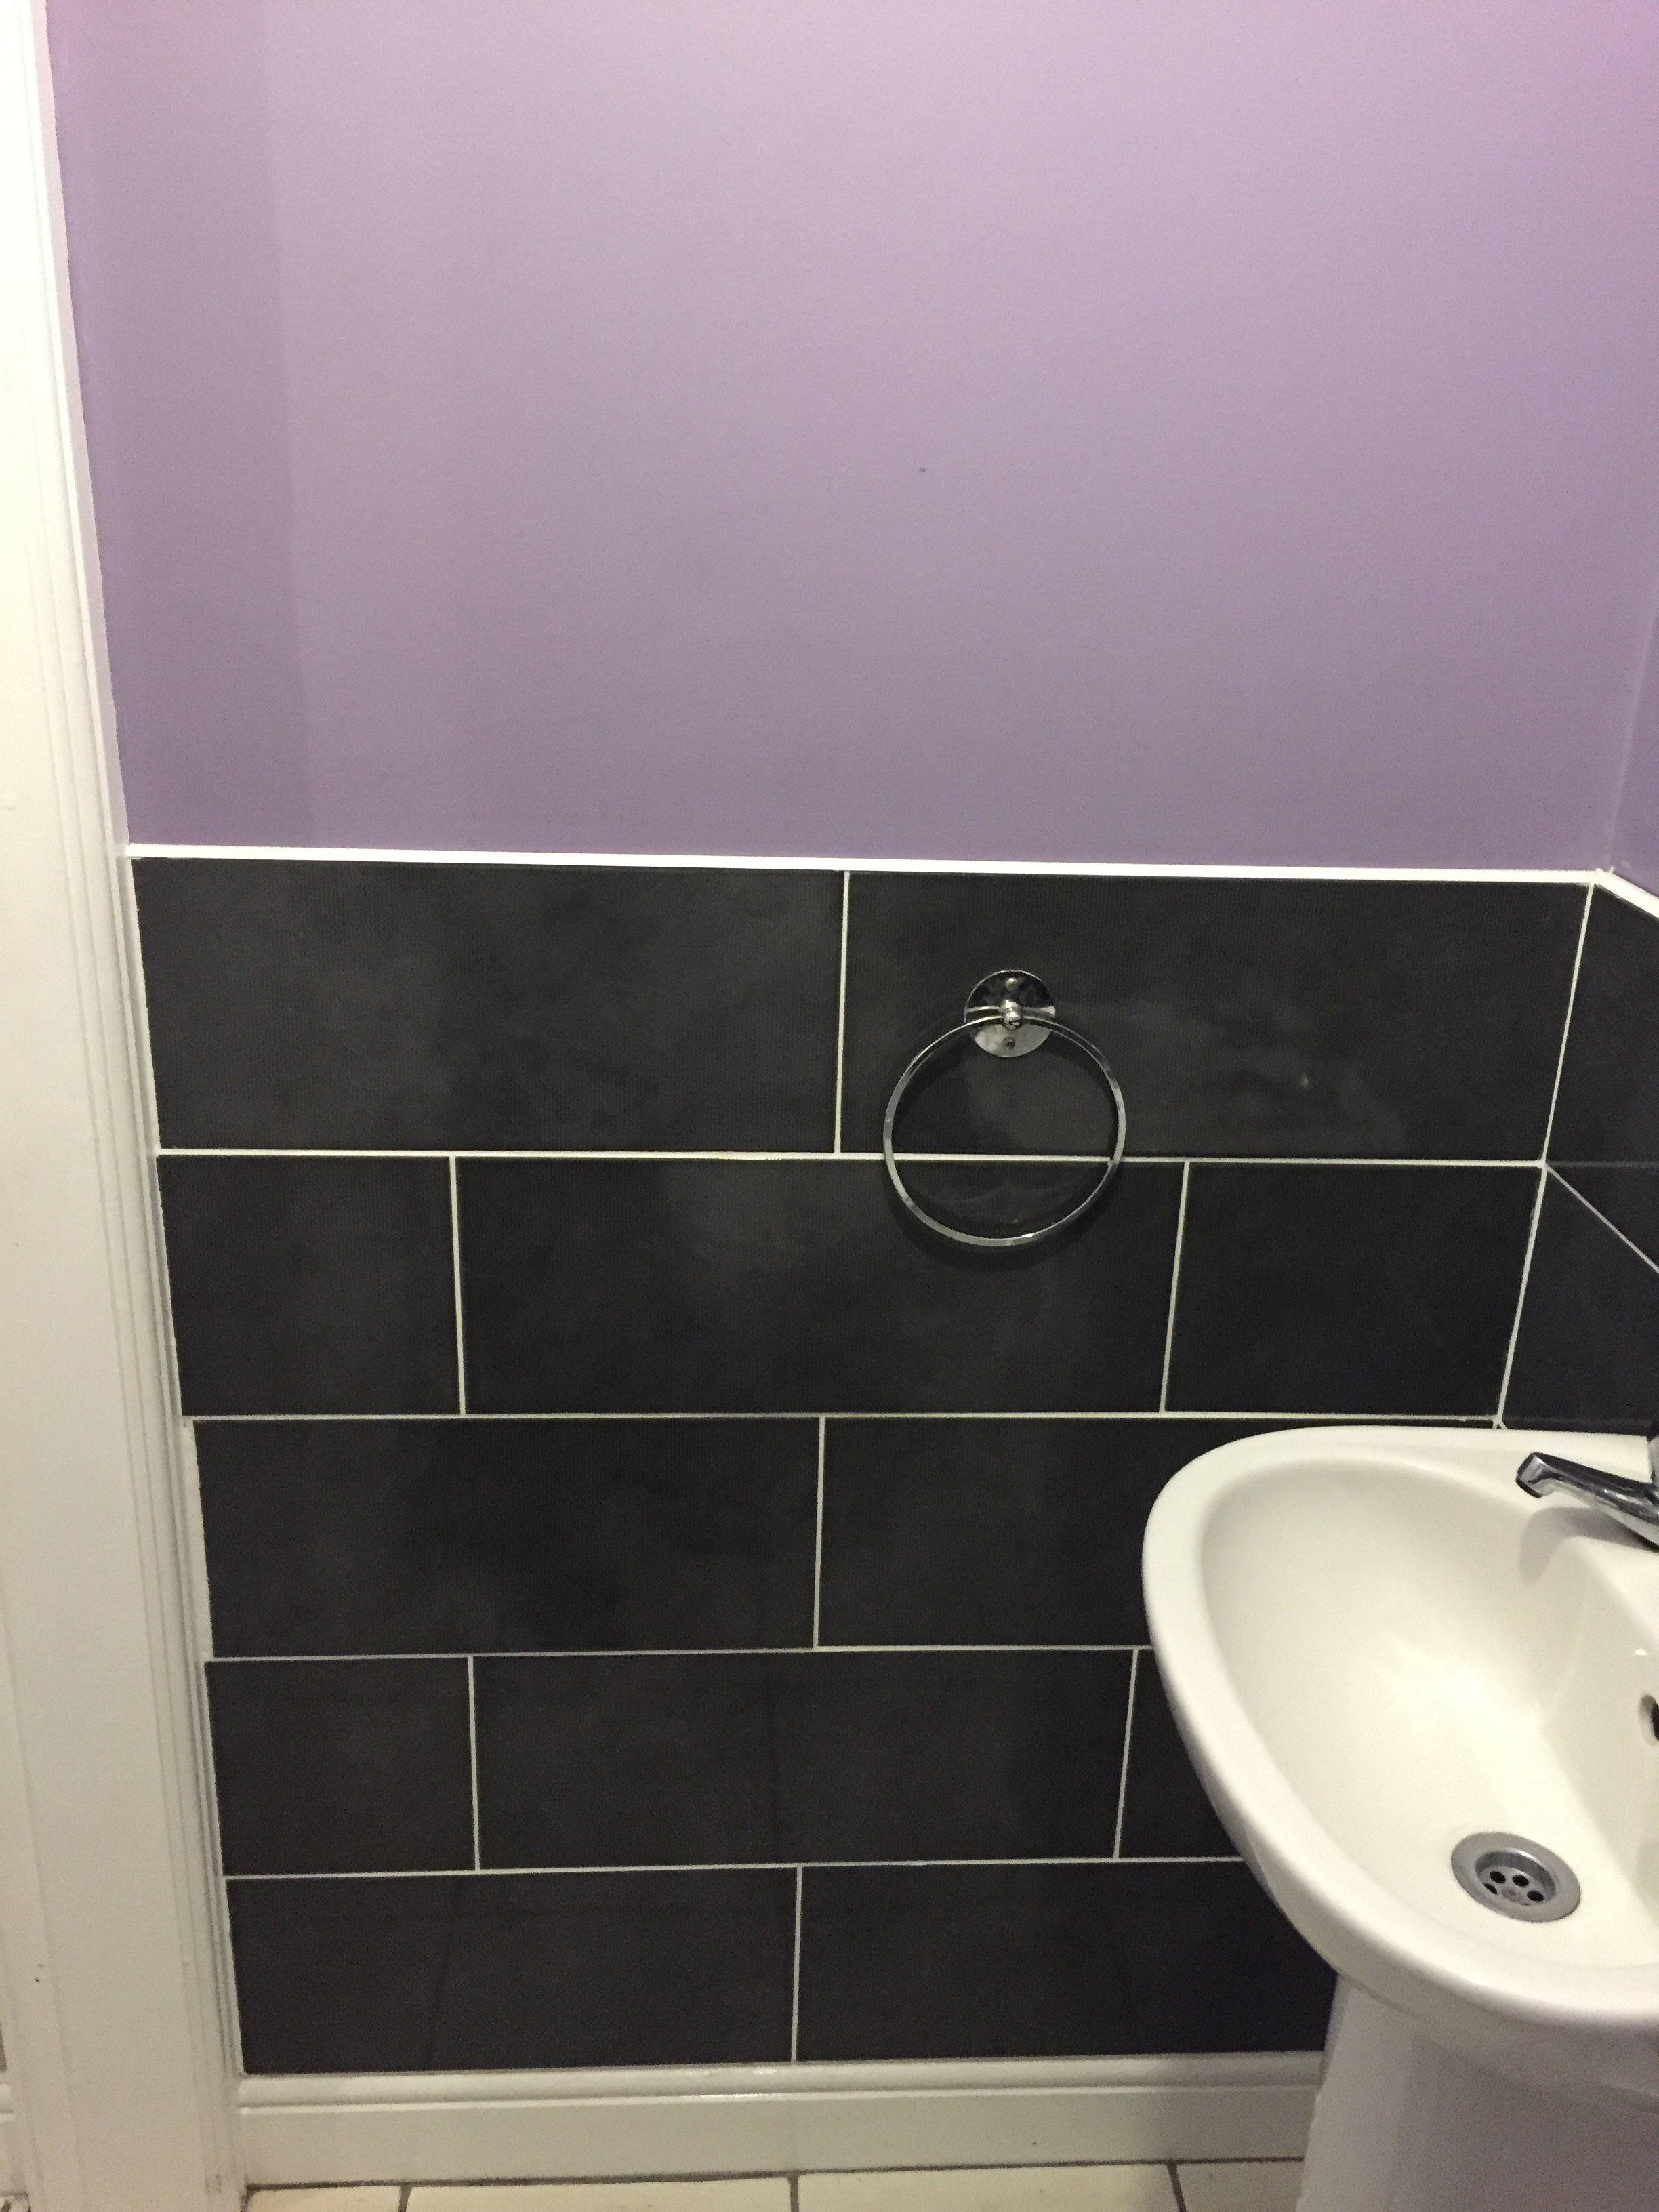 Tiling & Painting